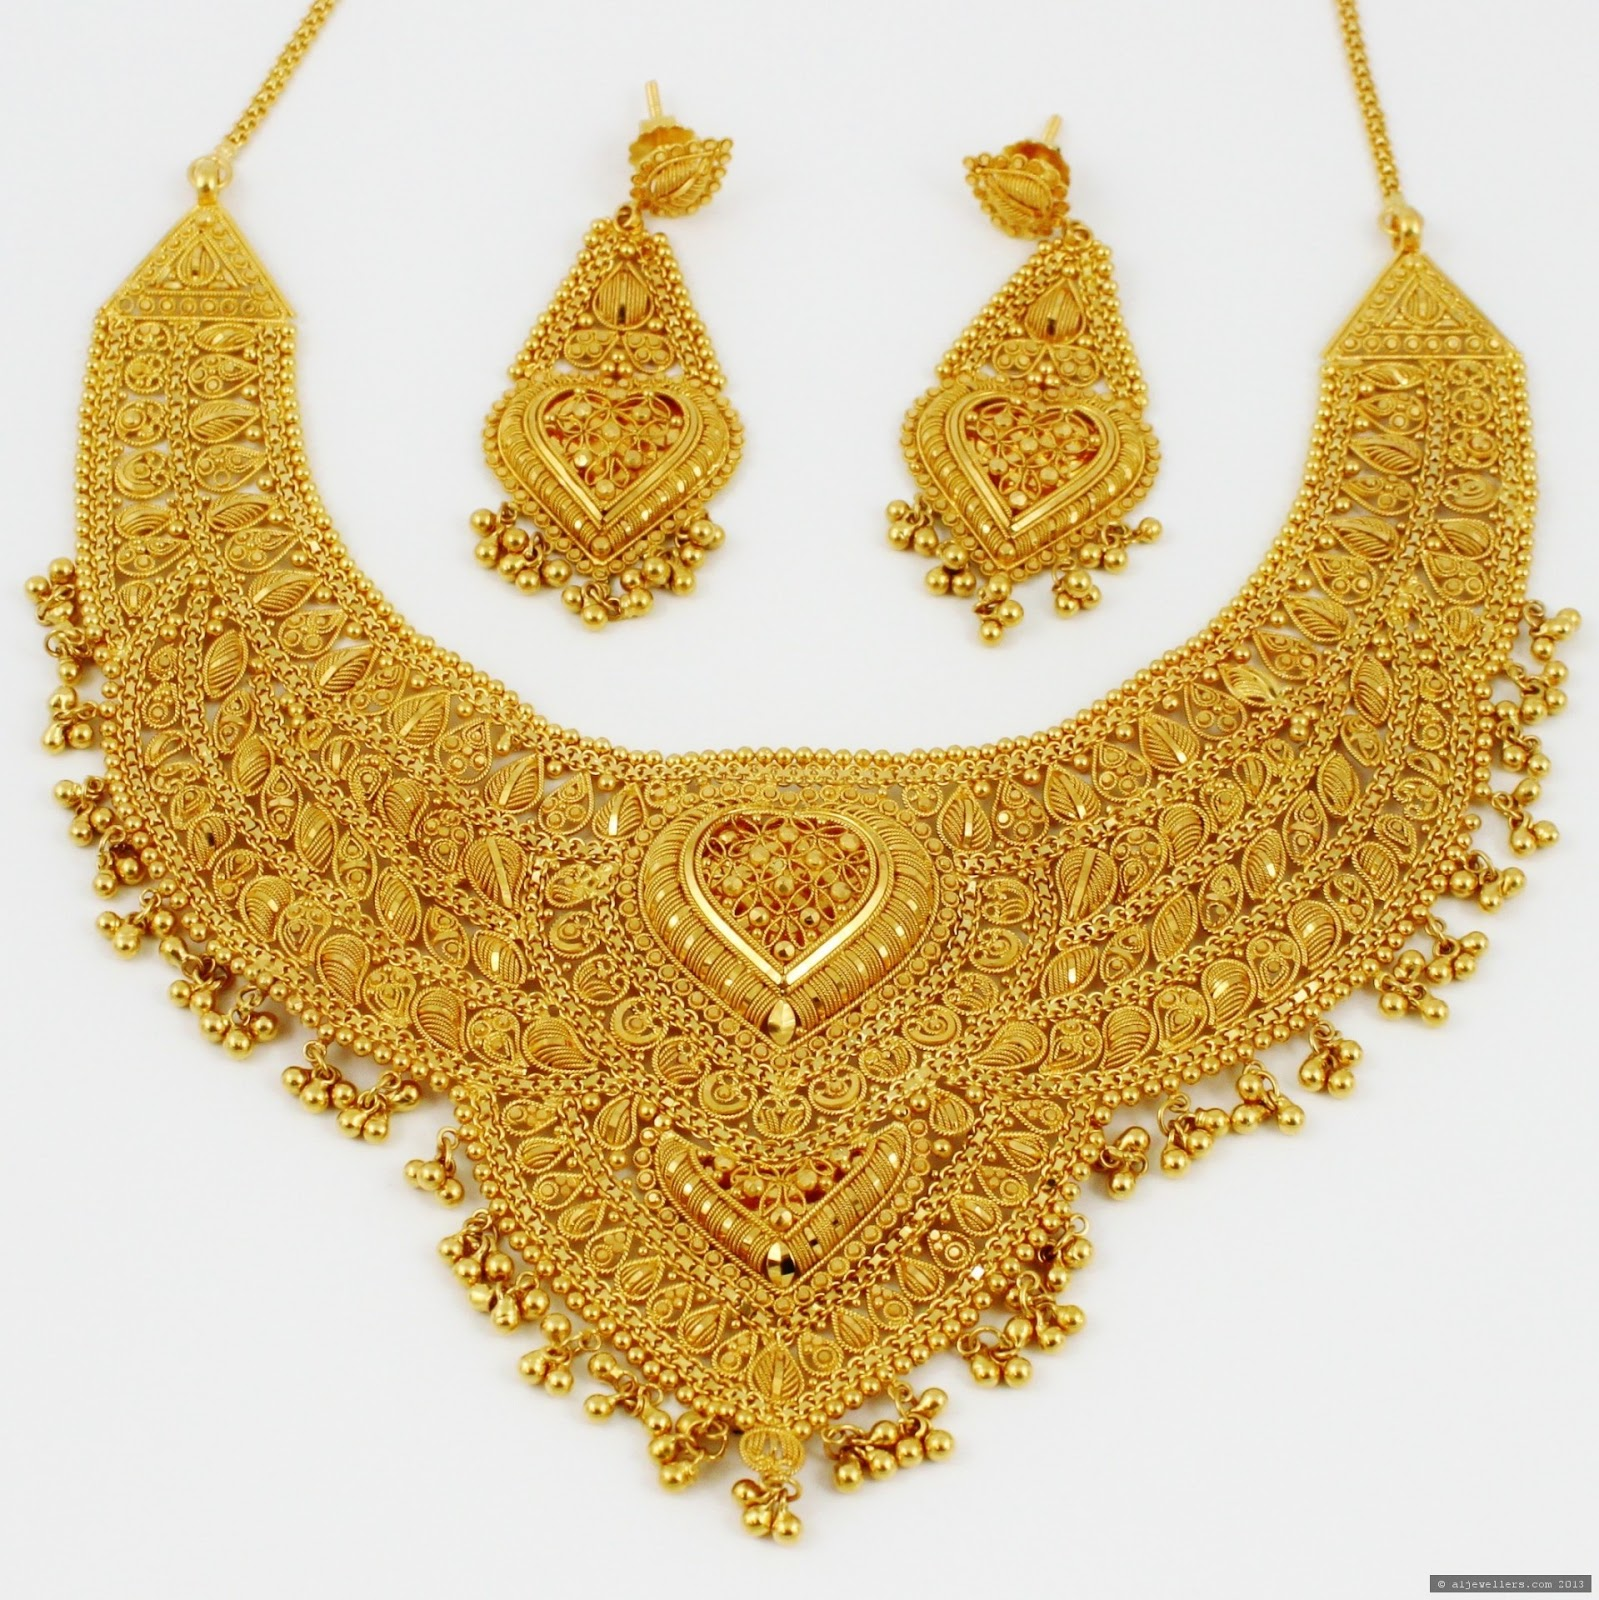 Latest Indian Gold Jewelry Designs - All The Best Gold In 2018